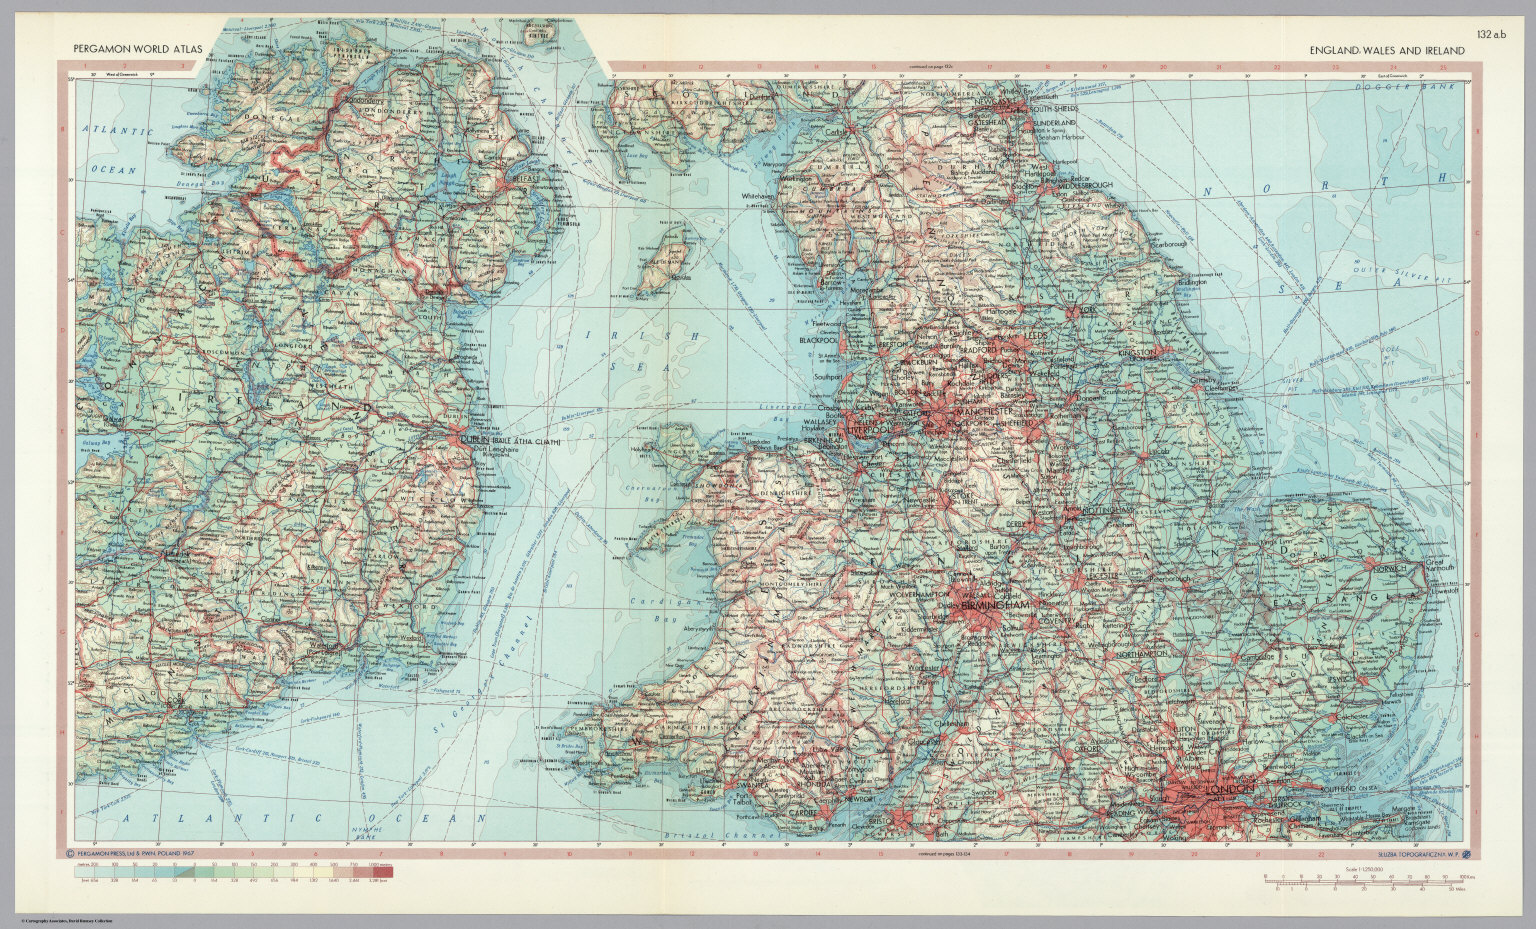 England wales and ireland pergamon world atlas david rumsey england wales and ireland pergamon world atlas gumiabroncs Choice Image